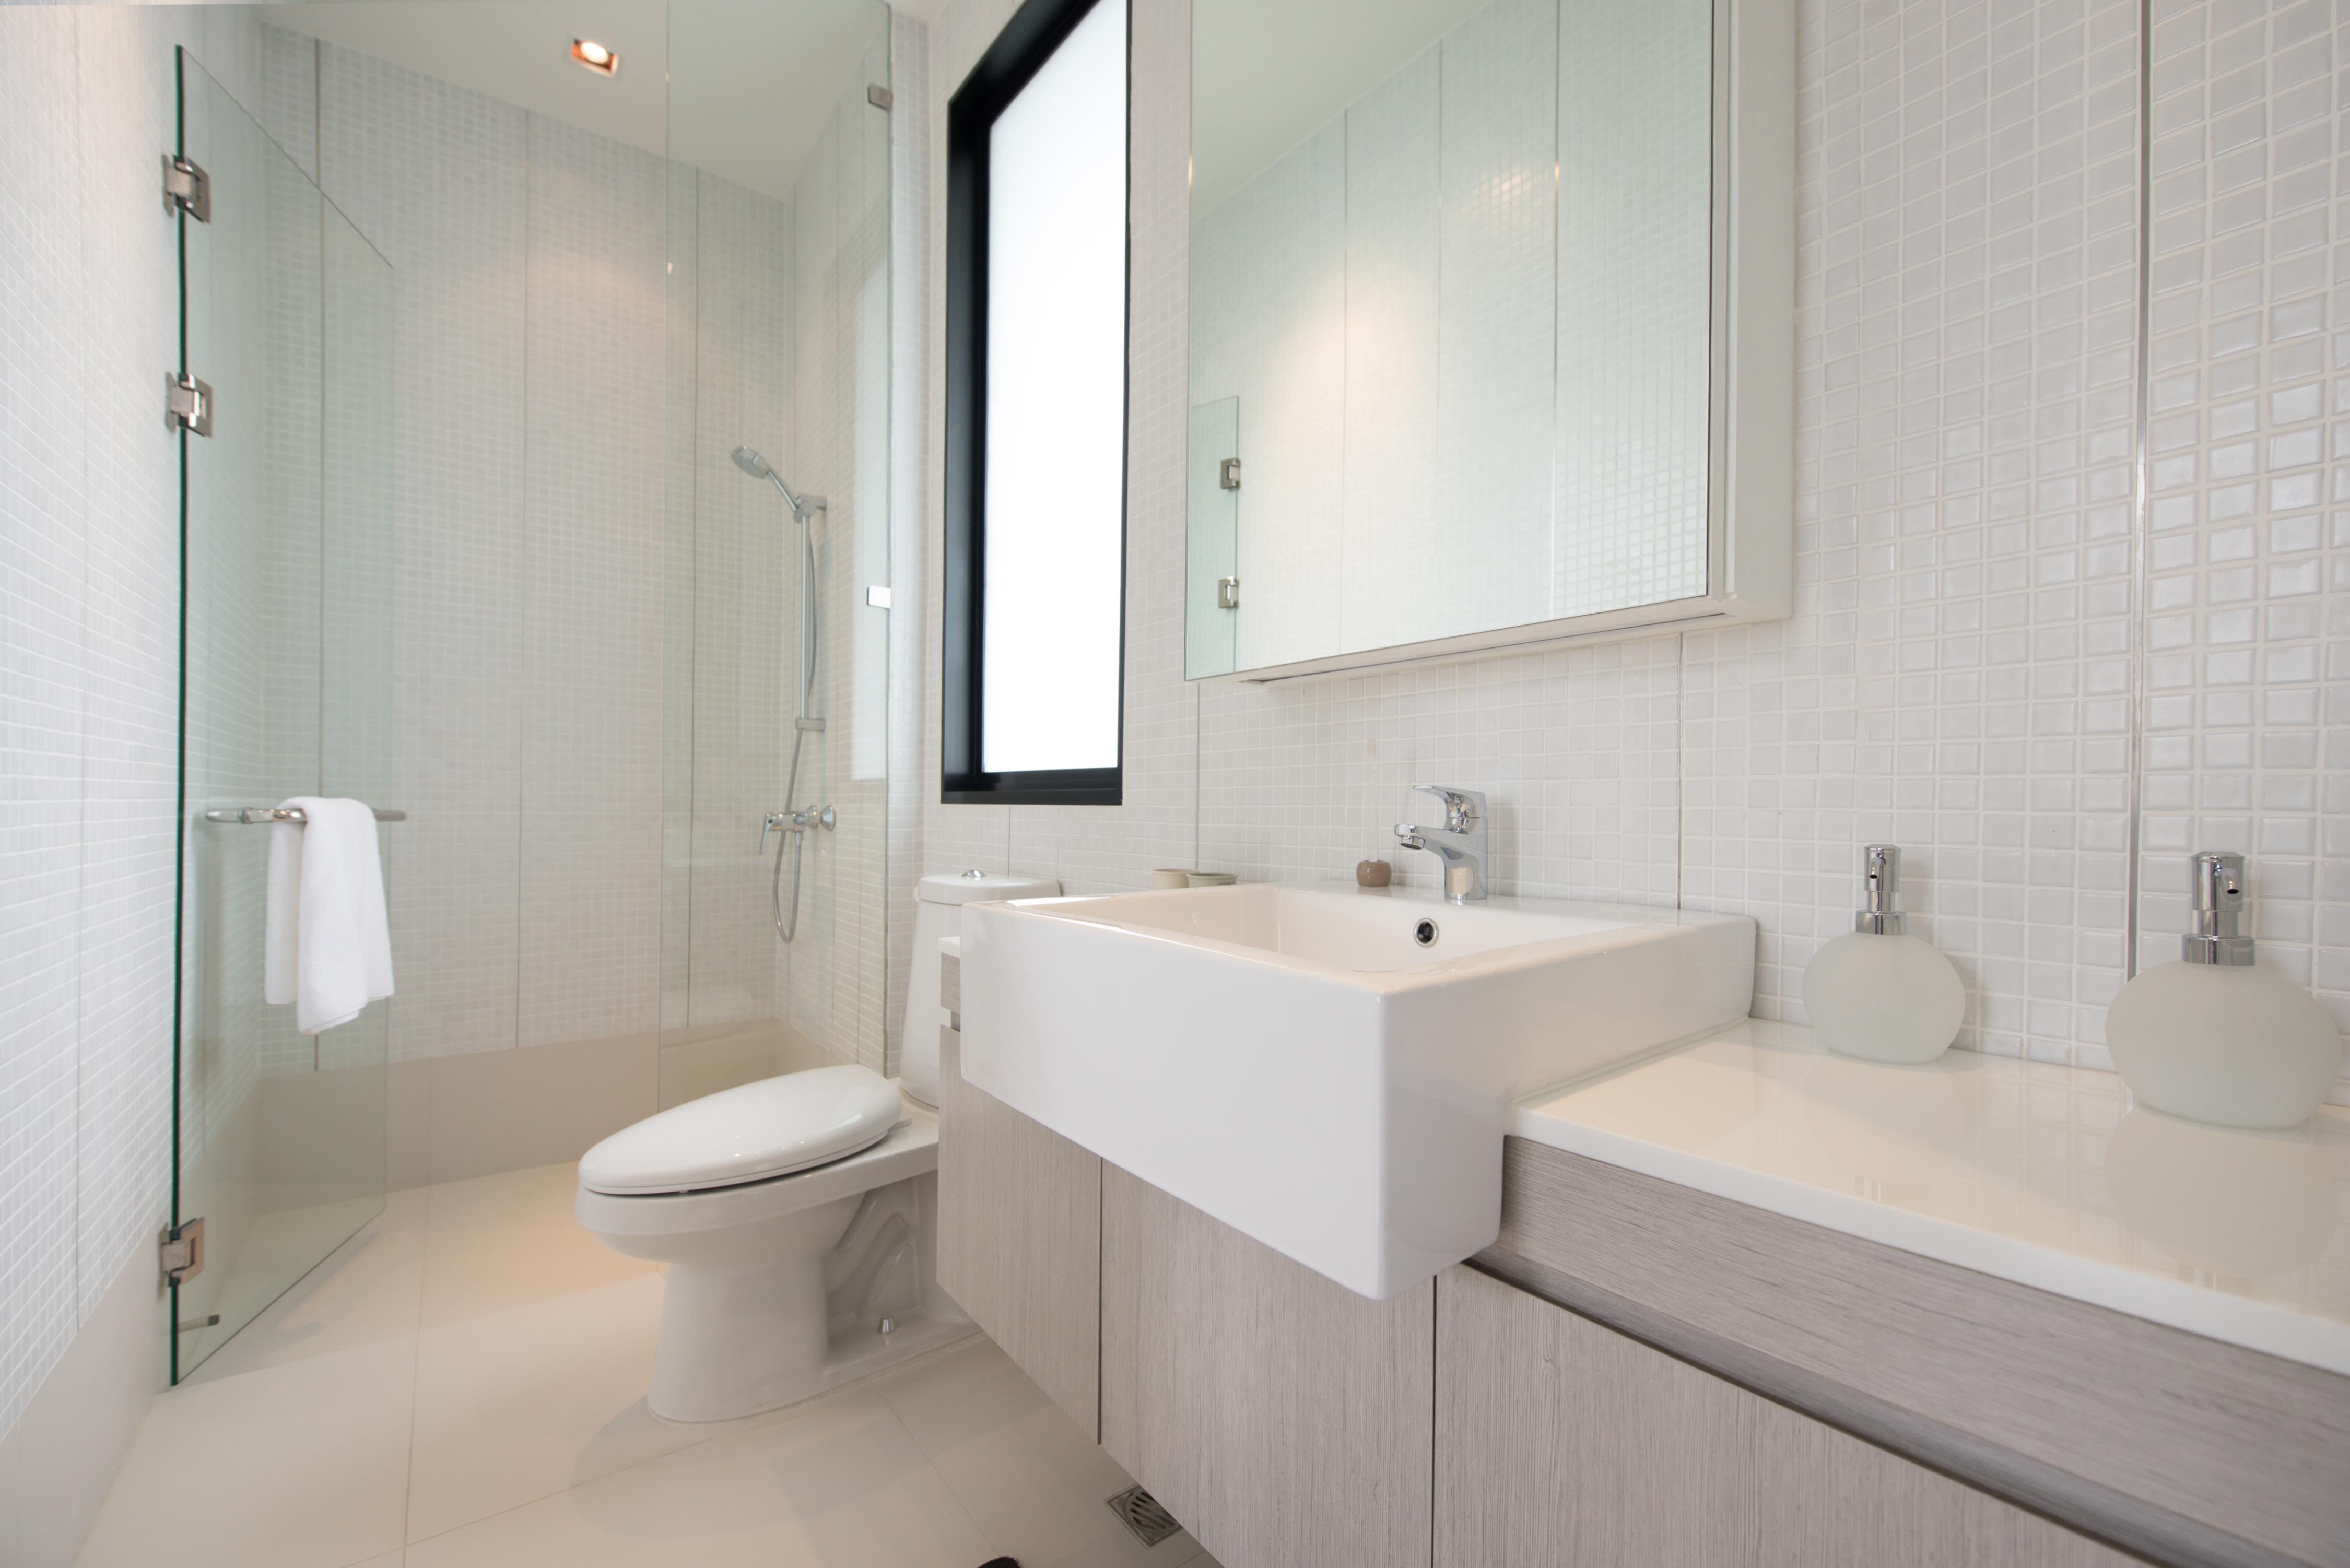 How To Make The Most Out Of A Small Bathroom | Quality ... on Small Bathroom Ideas Uk id=90145